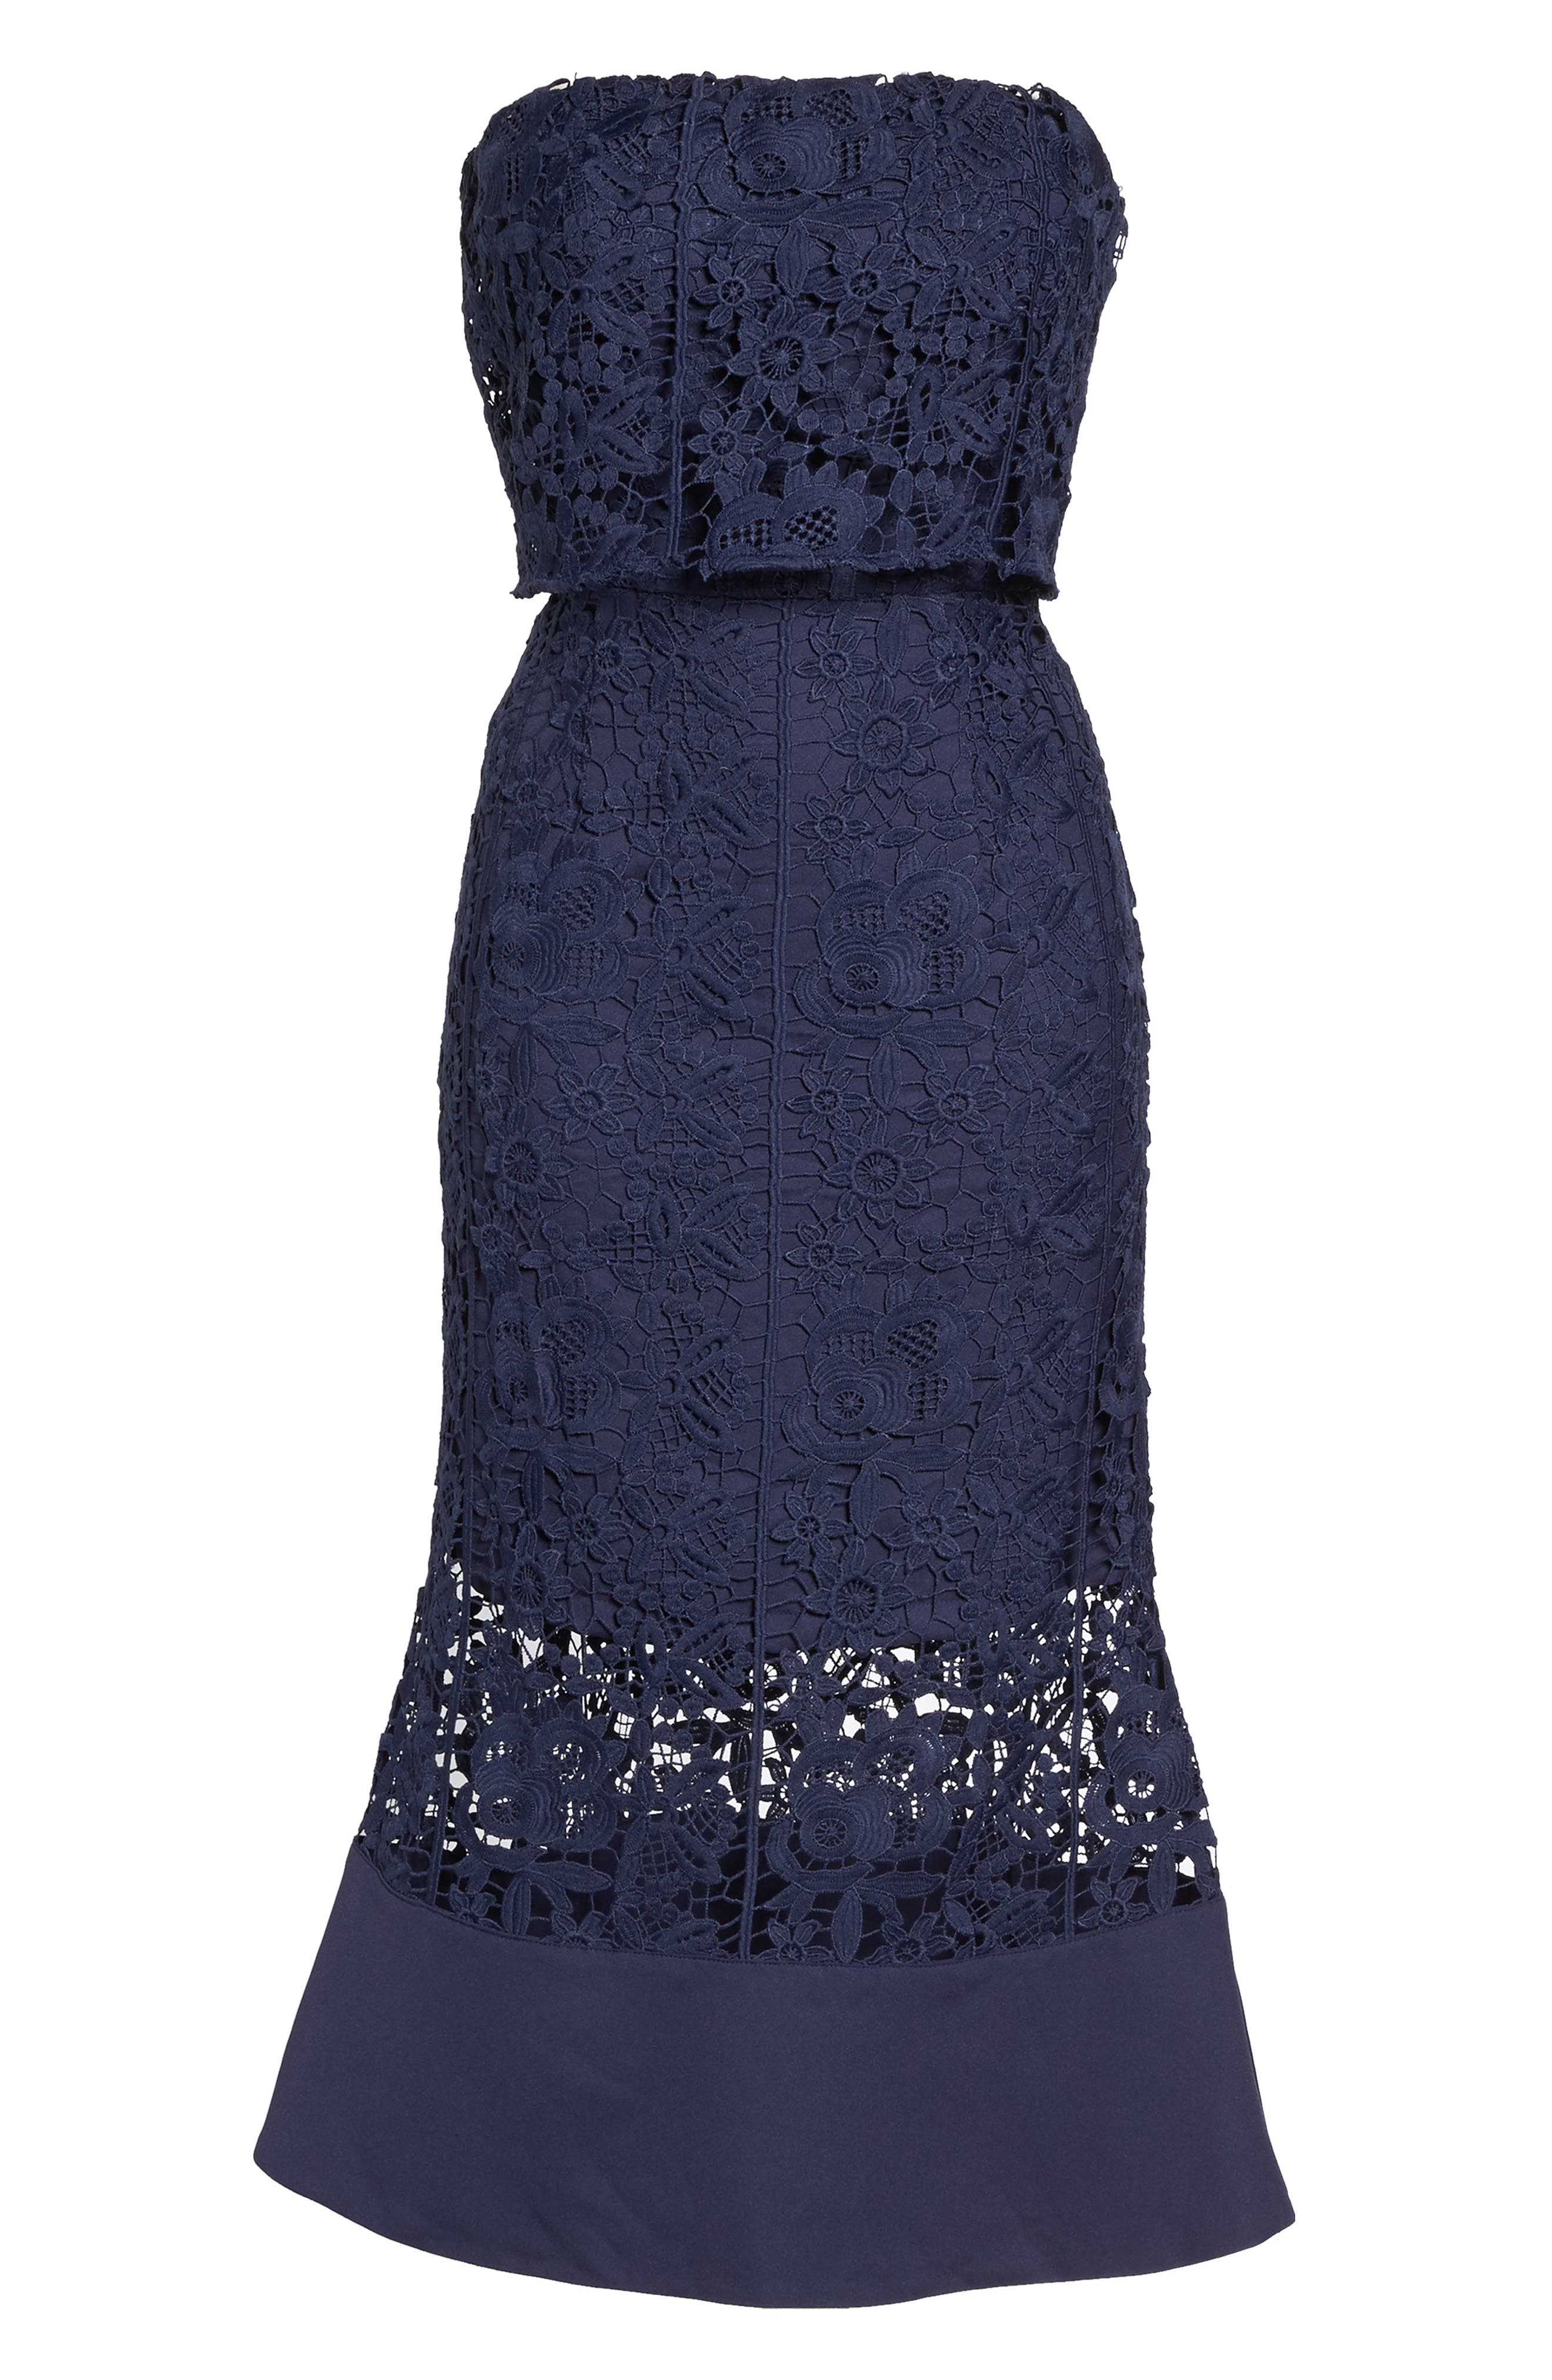 Xenia Strapless Lace Midi Dress,                             Alternate thumbnail 6, color,                             Navy